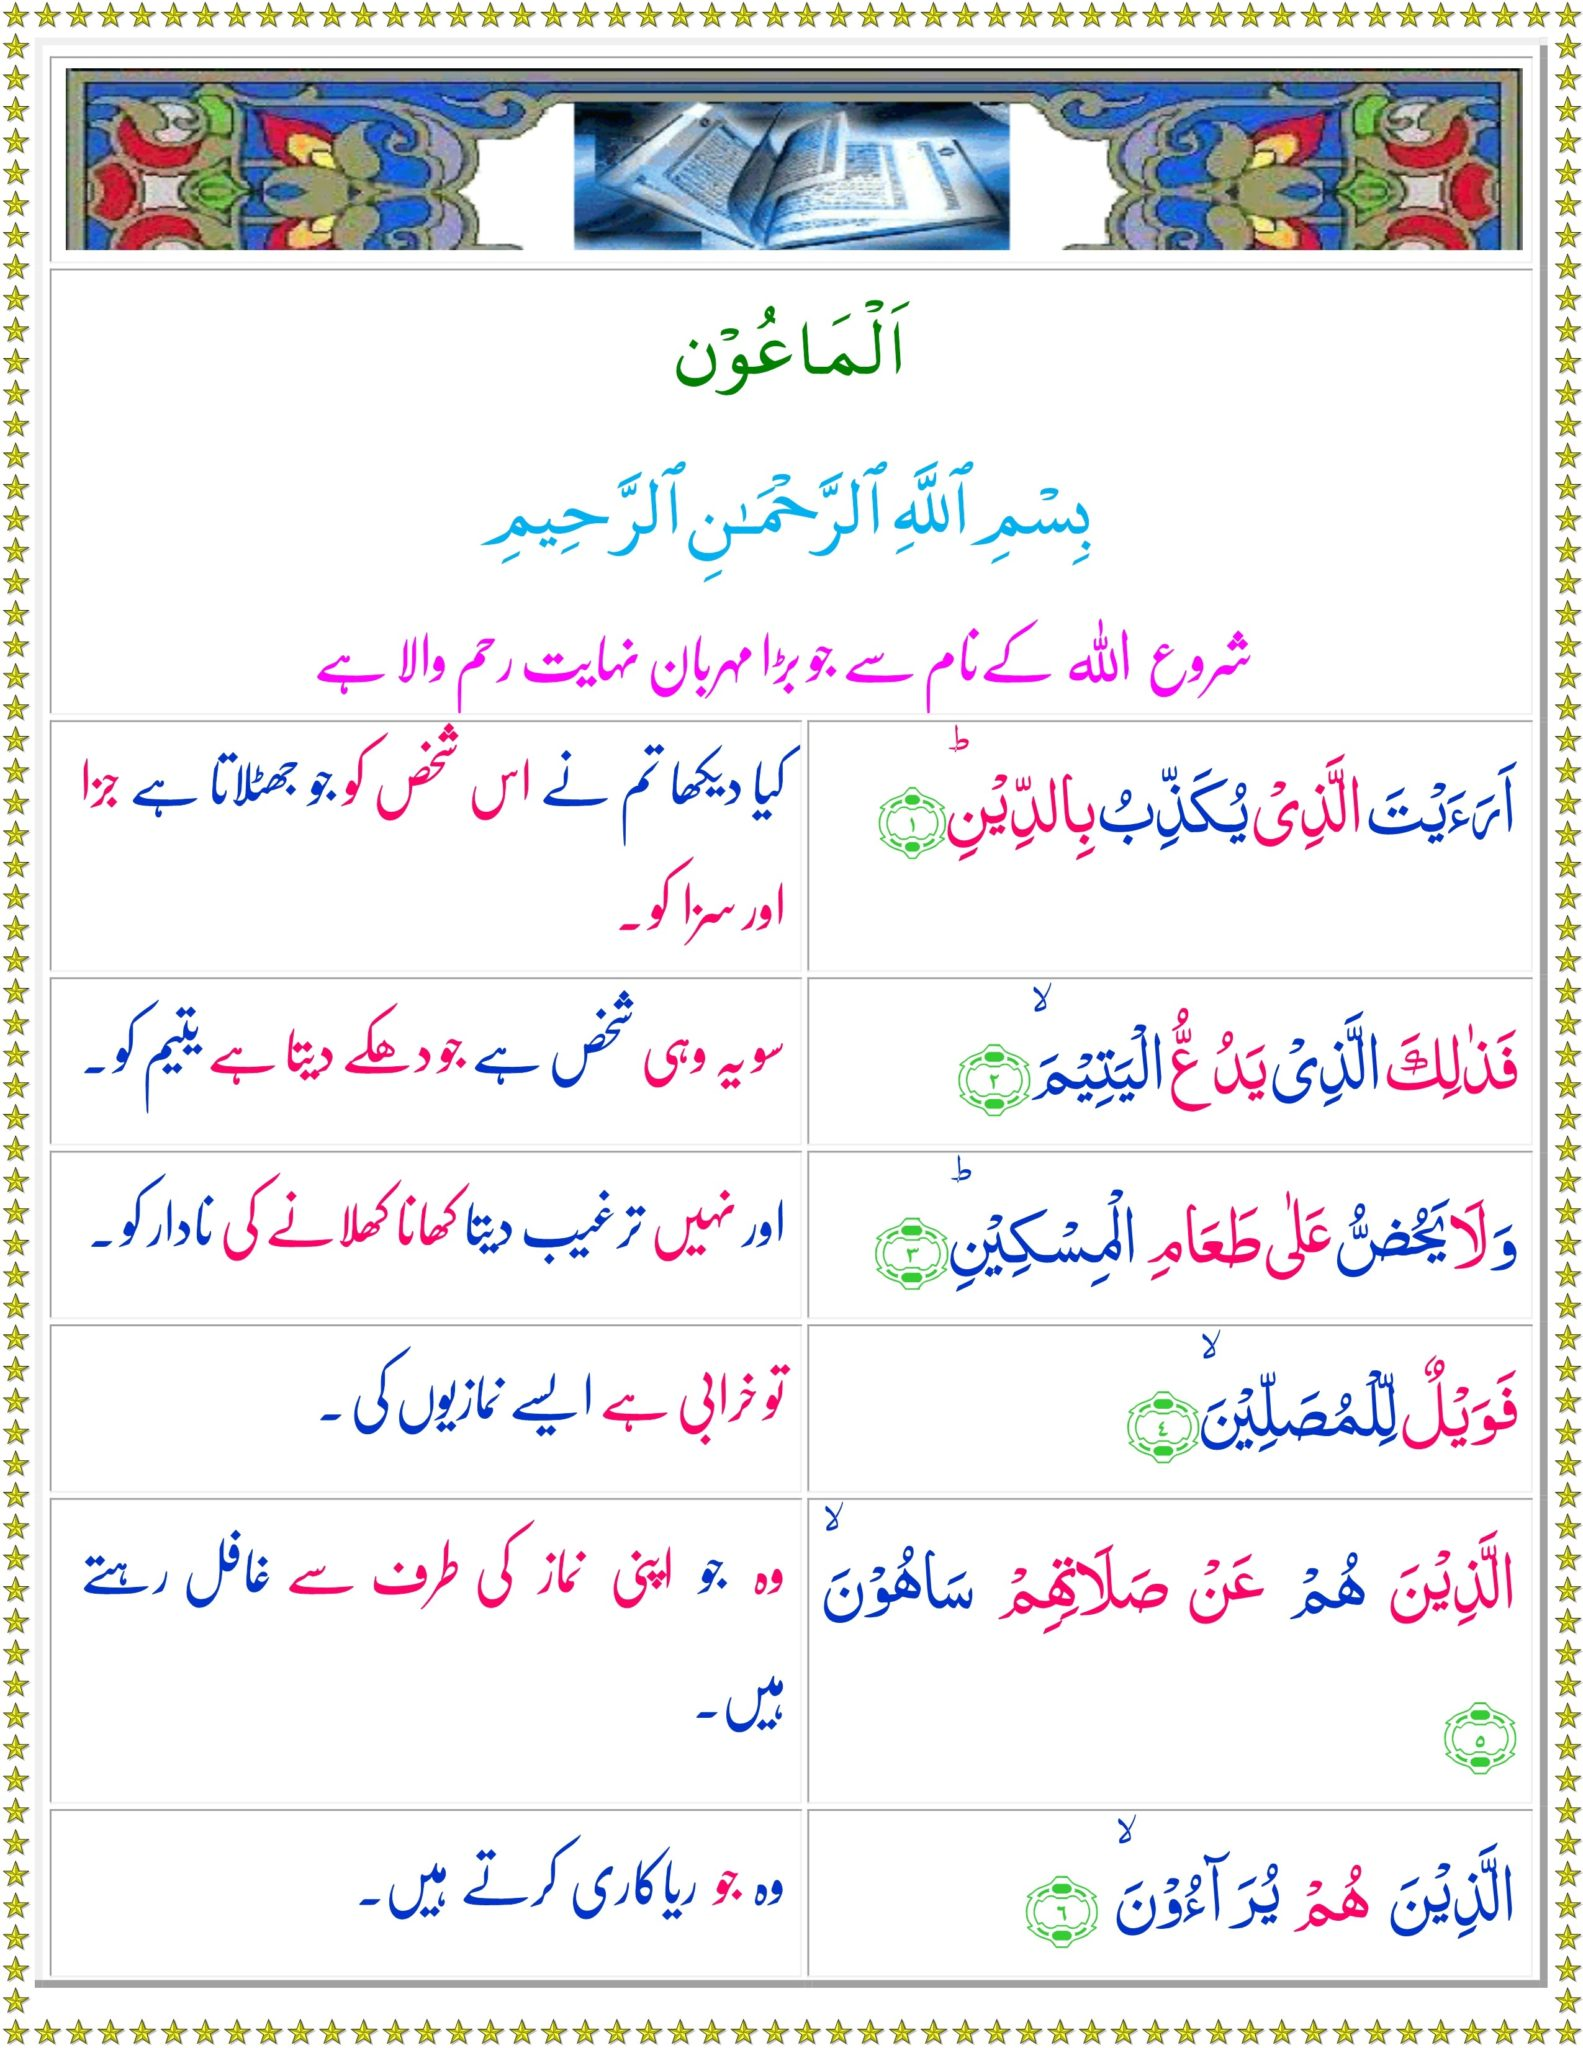 Surah Maun translation in Urdu, Hindi